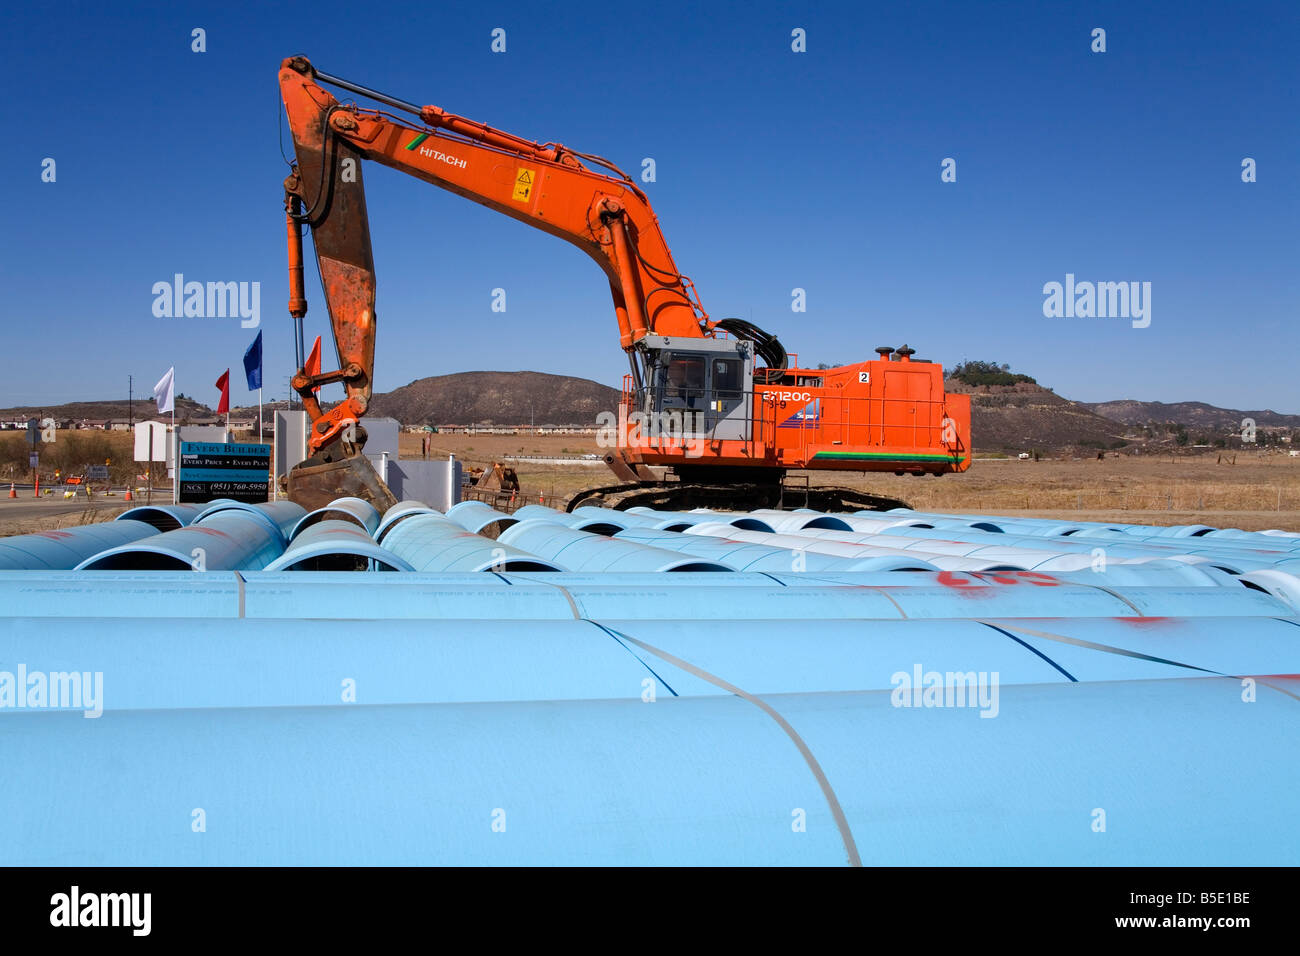 Pipe laying, Temecula Valley, Southern California, USA, North America - Stock Image